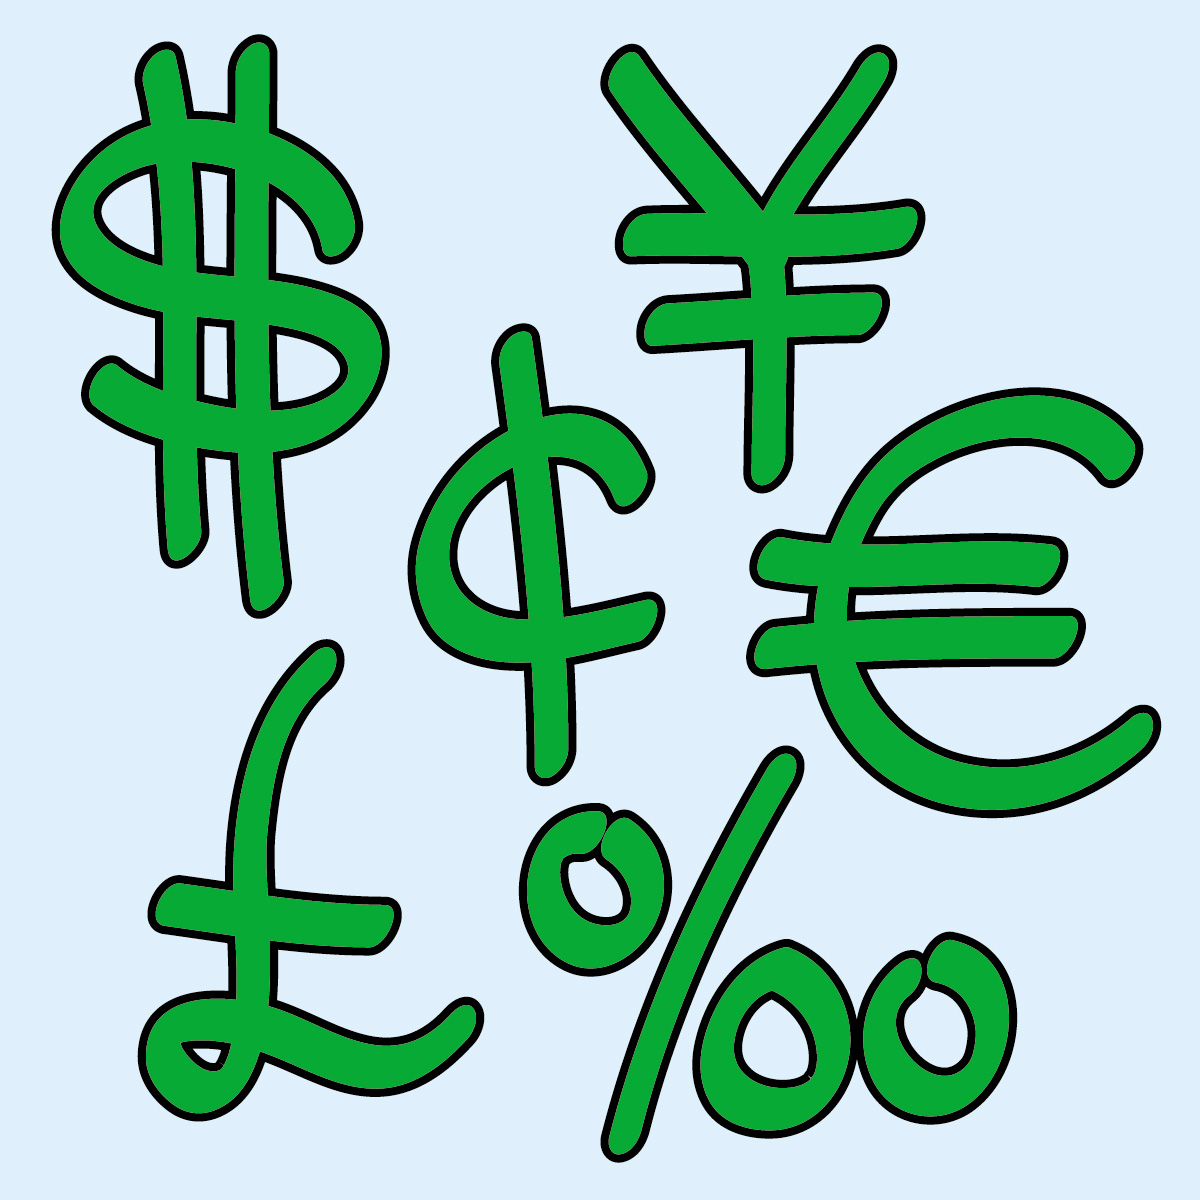 Free Money Symbols, Download Free Clip Art, Free Clip Art on.